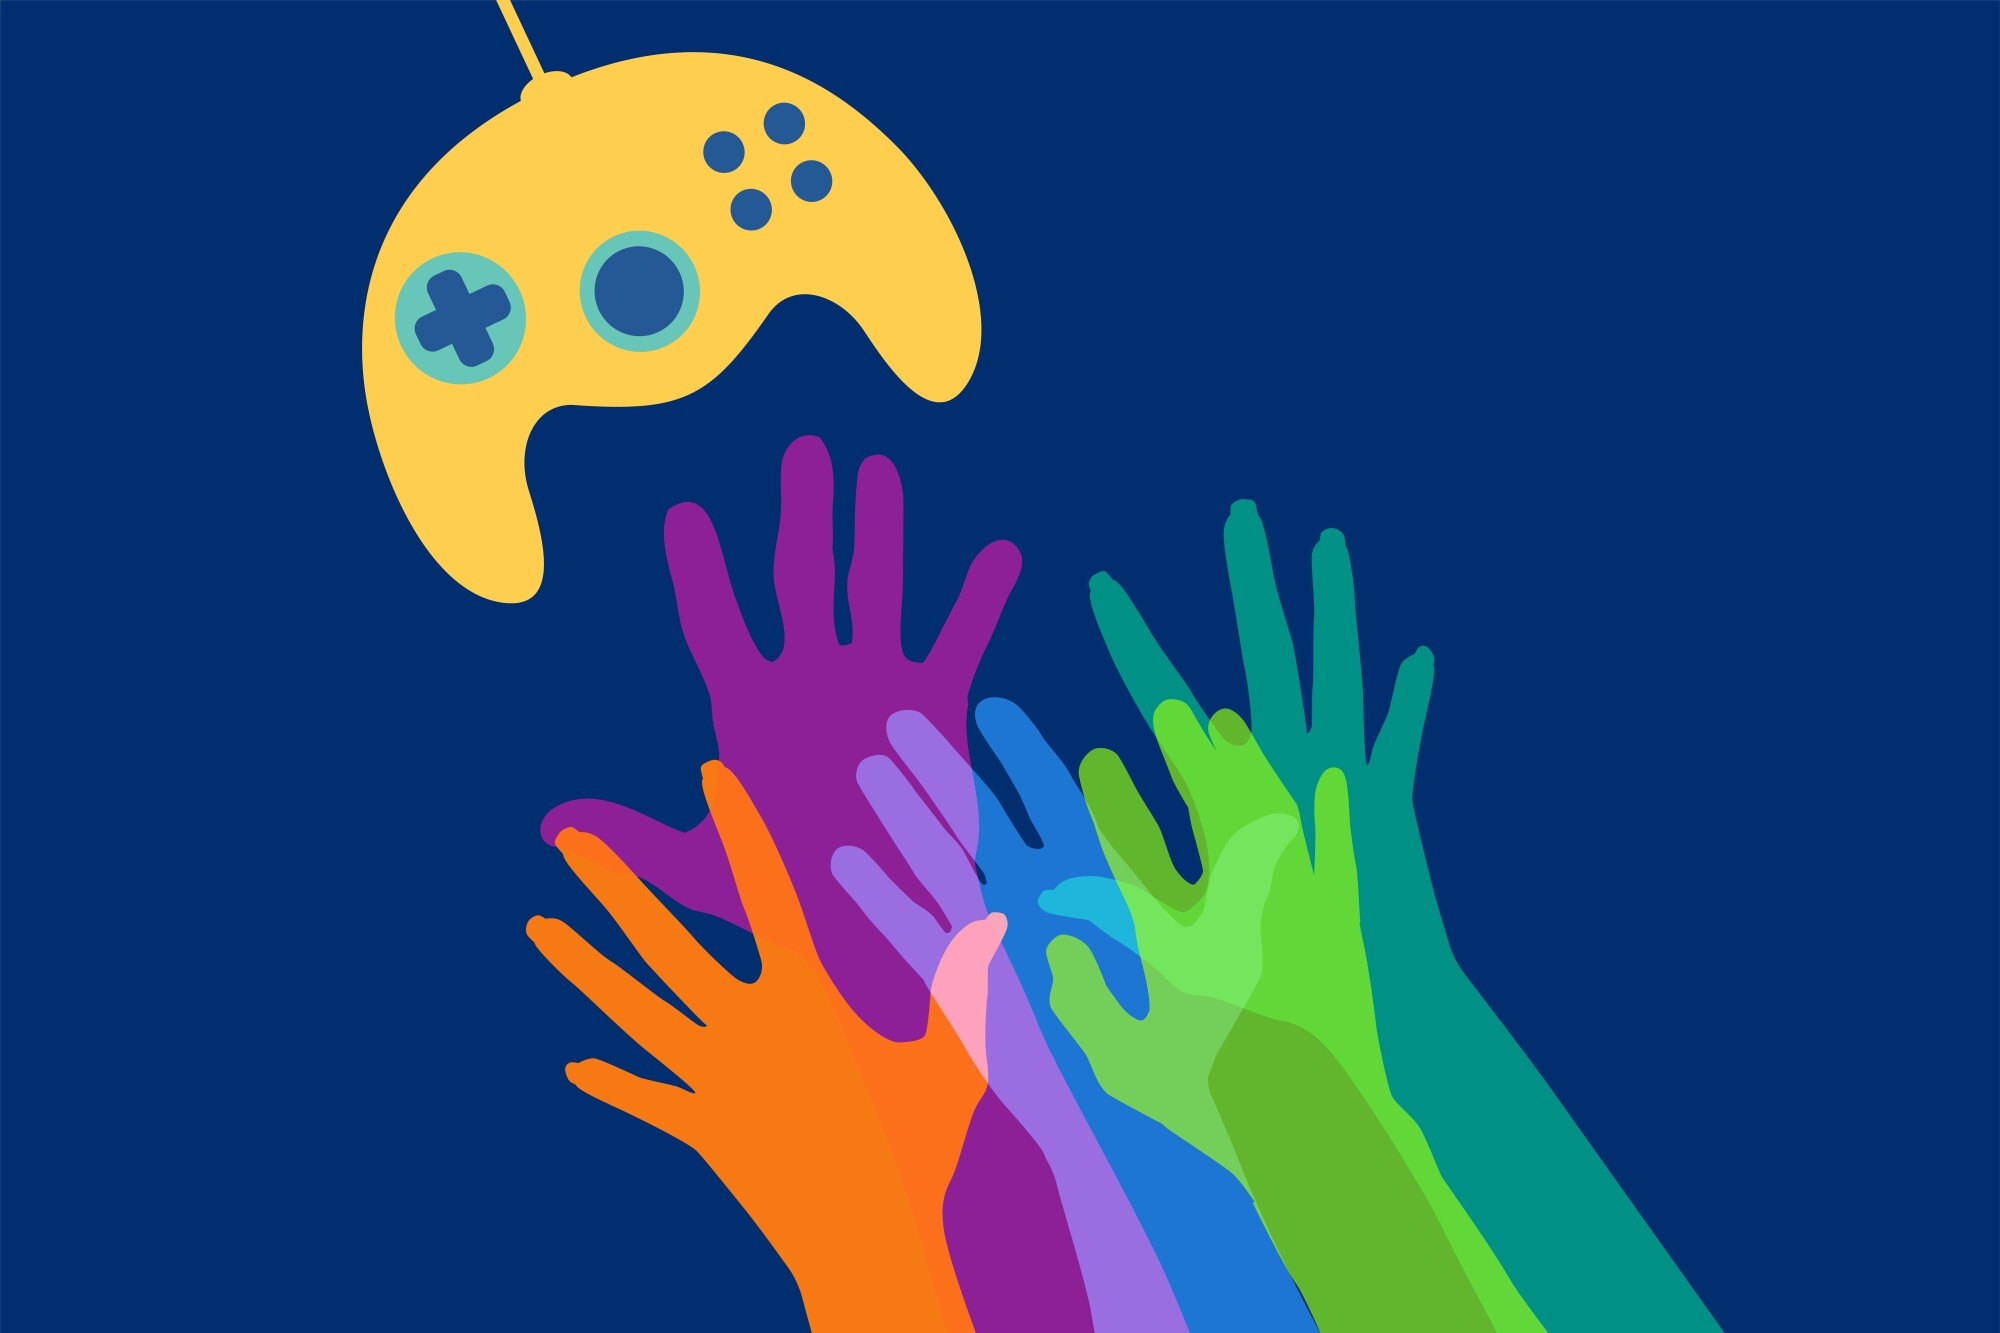 Illustration of hands reaching for a video game controller